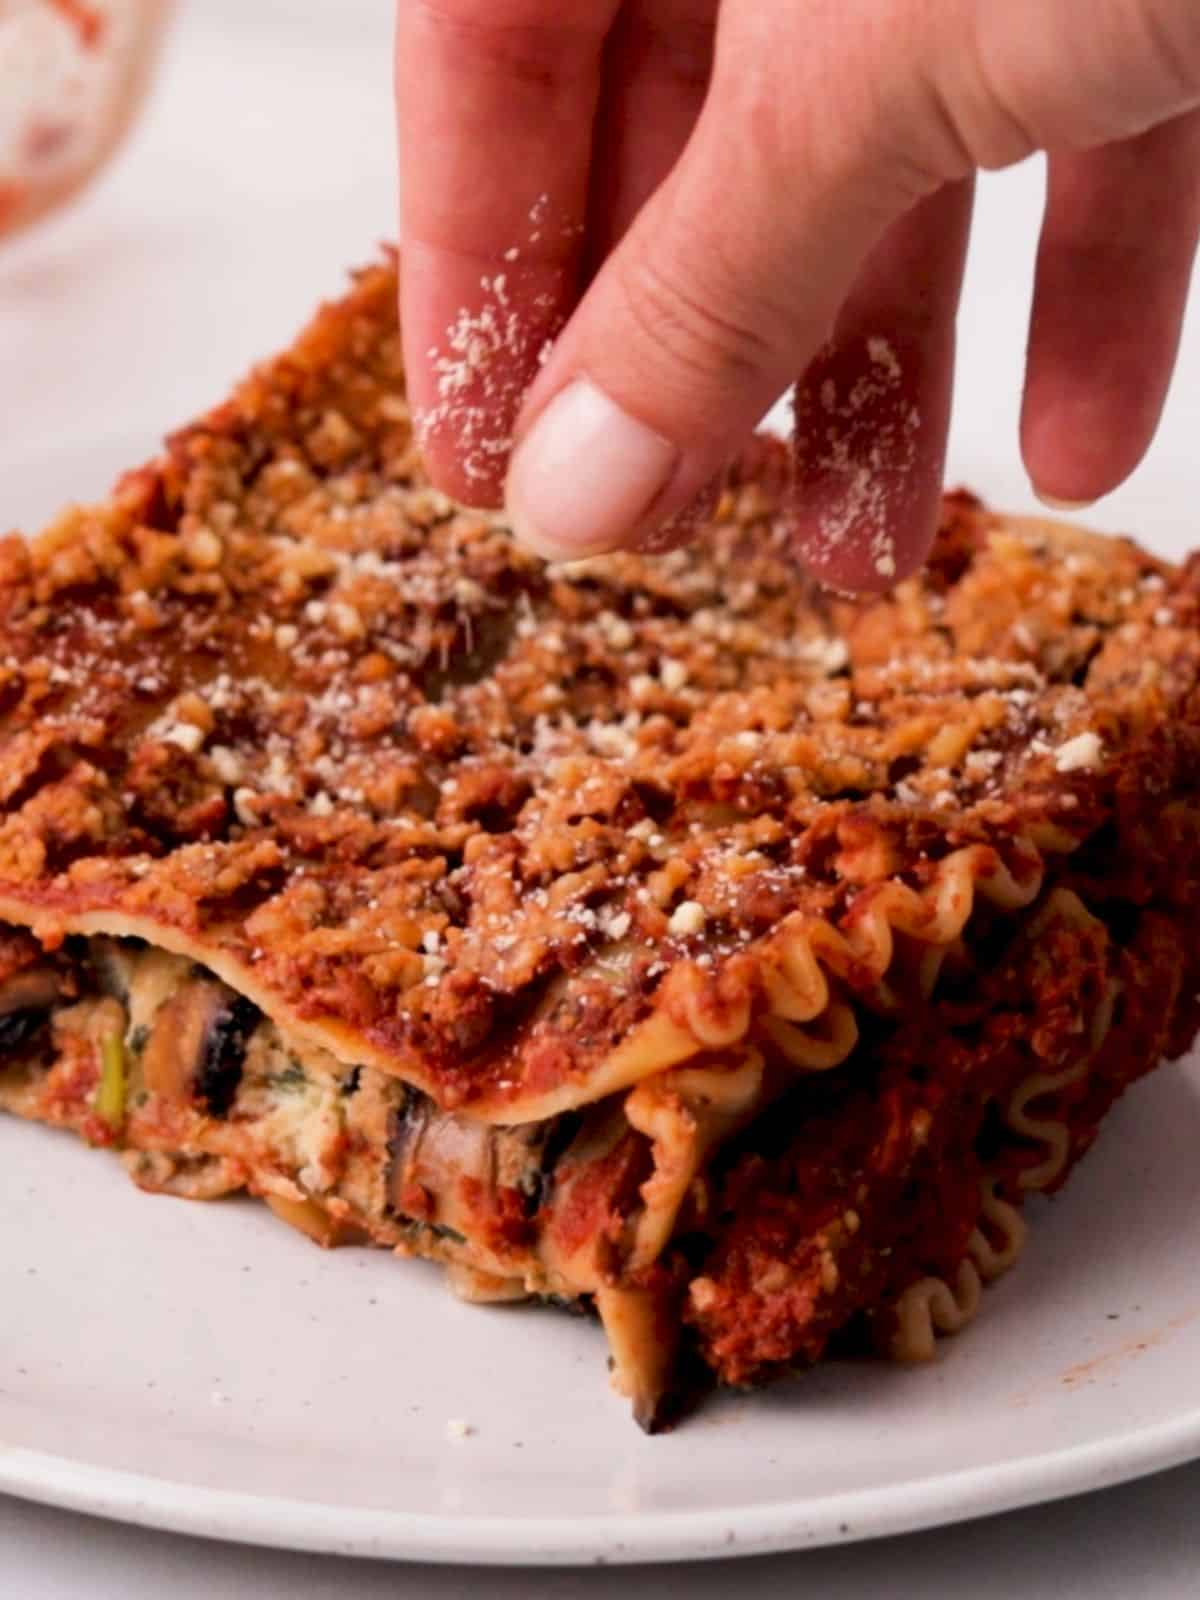 Hand sprinkling parmesan cheese on slice of vegan lasagna.